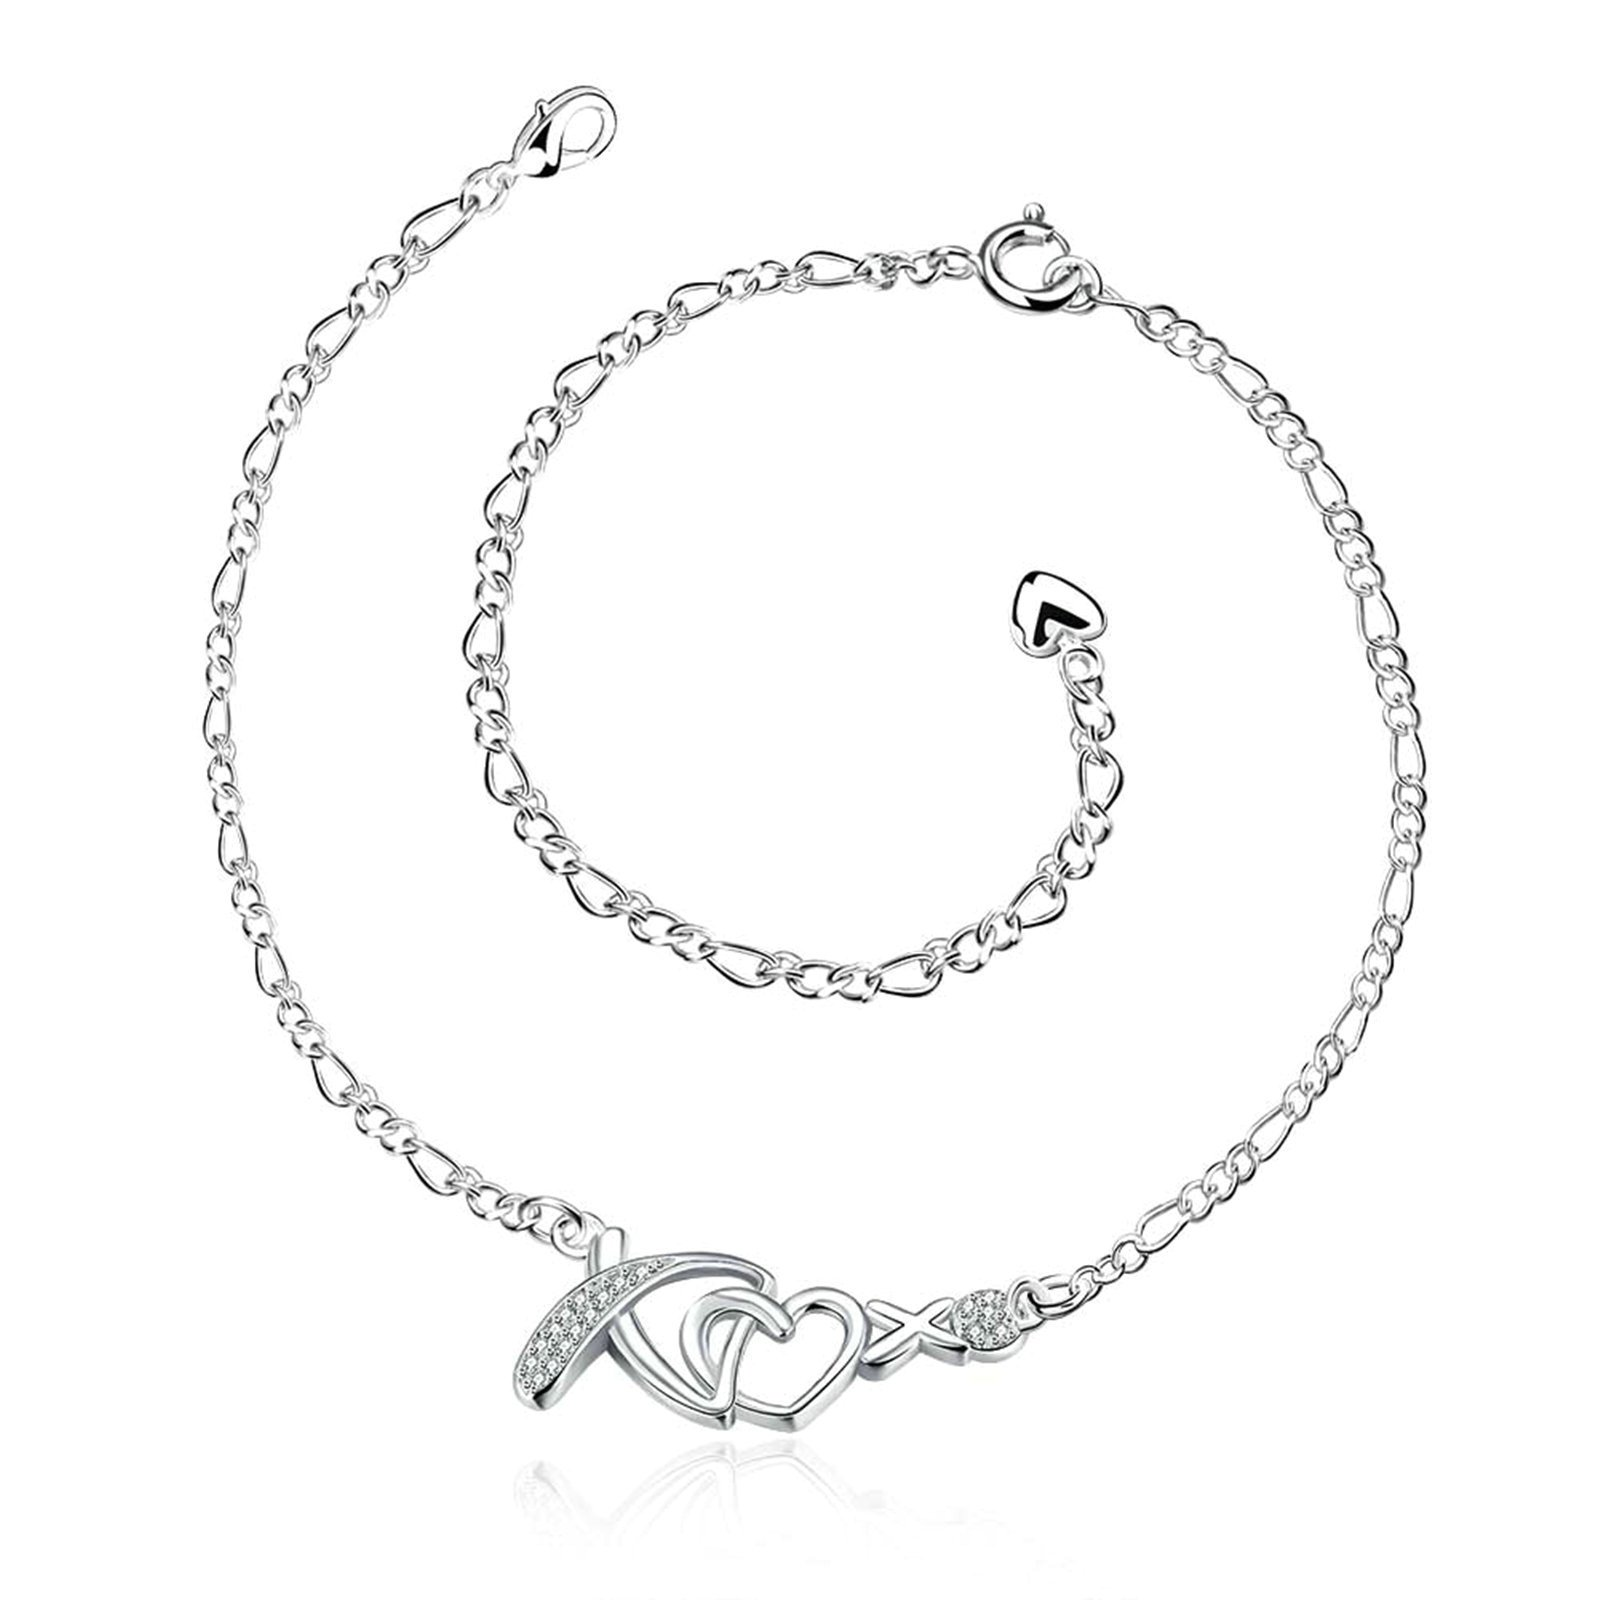 Adisaer Silver Plated Anklet Bracelet 20+10CM Chain Heart Cubic Zirconia Silver Womens Beach Foot Jewelry